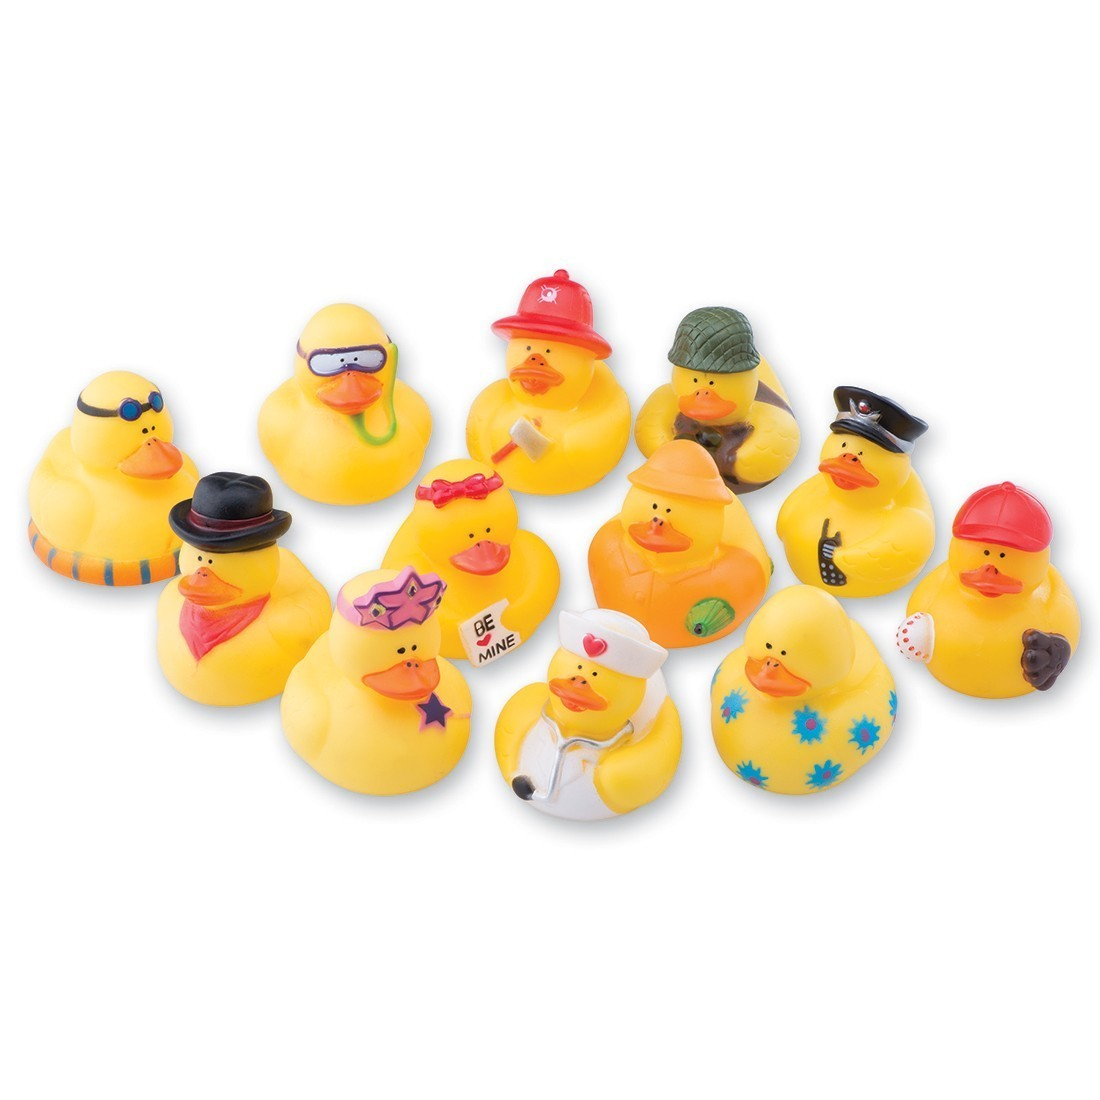 Rubber Duckie Value Pack [image]